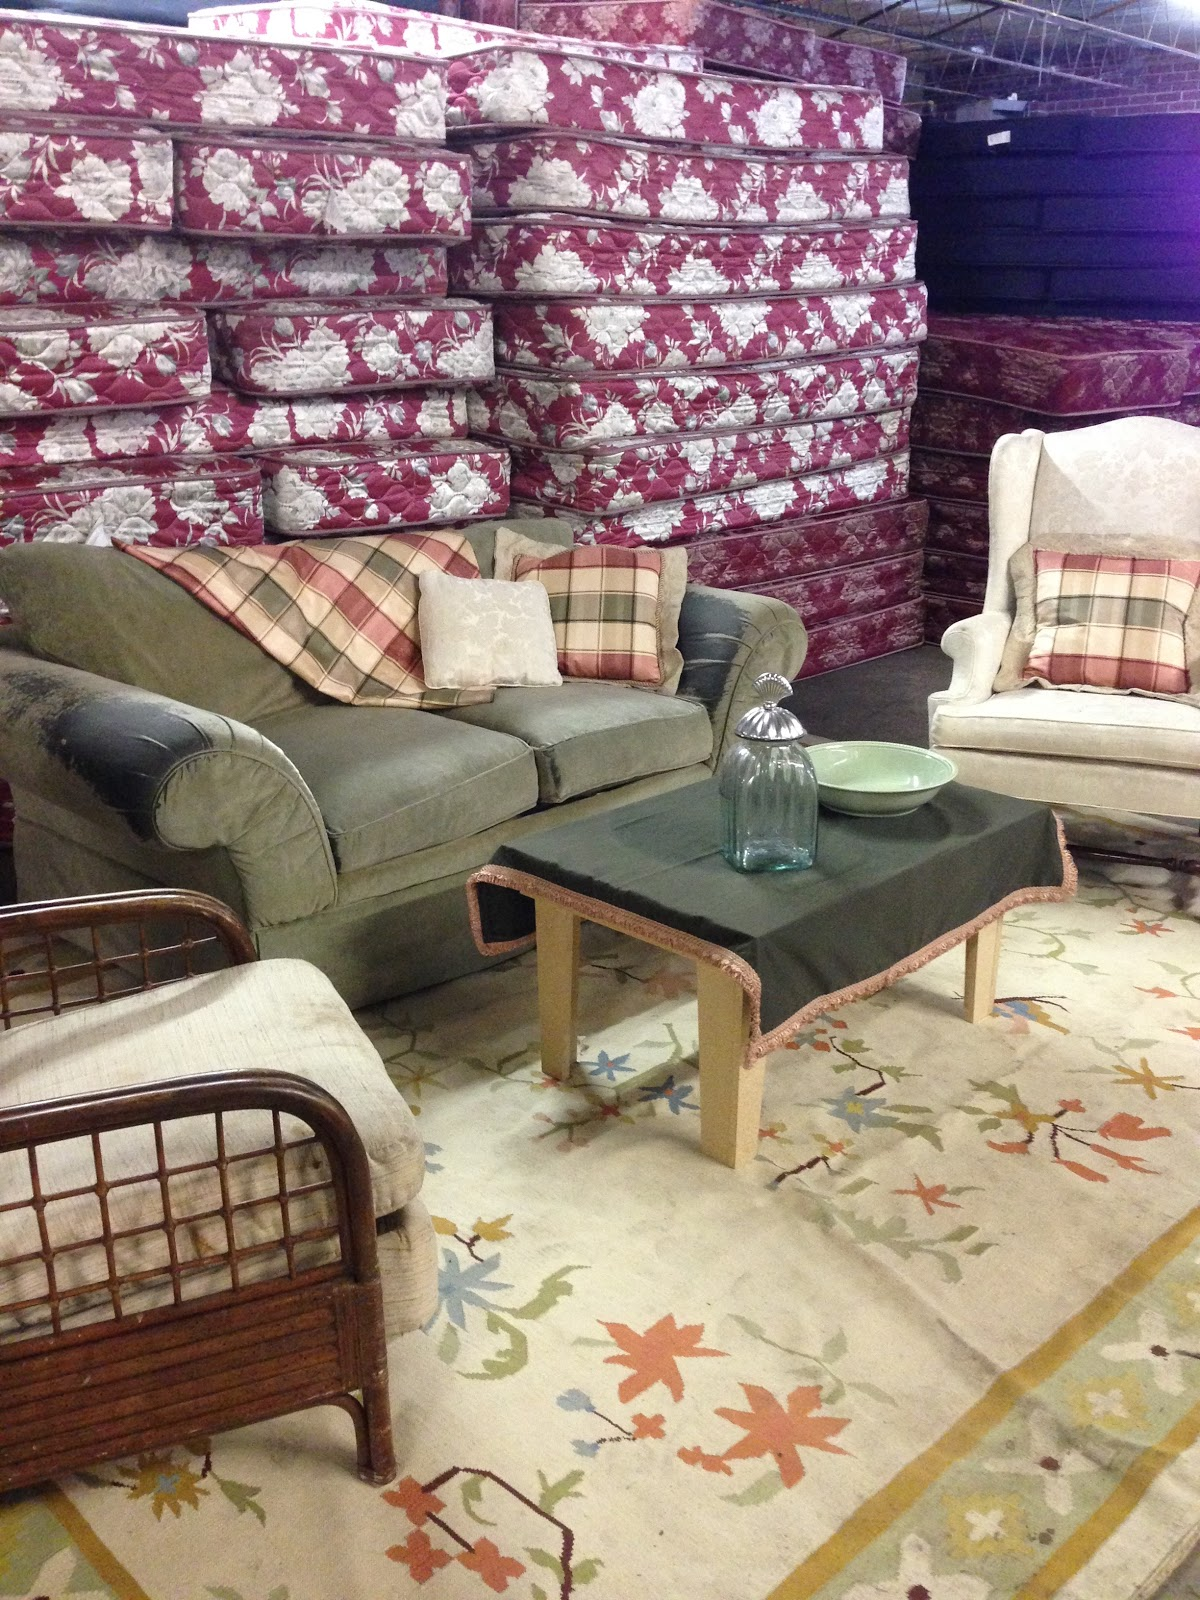 Donate Out Couch And Kitchen Table And Chairs